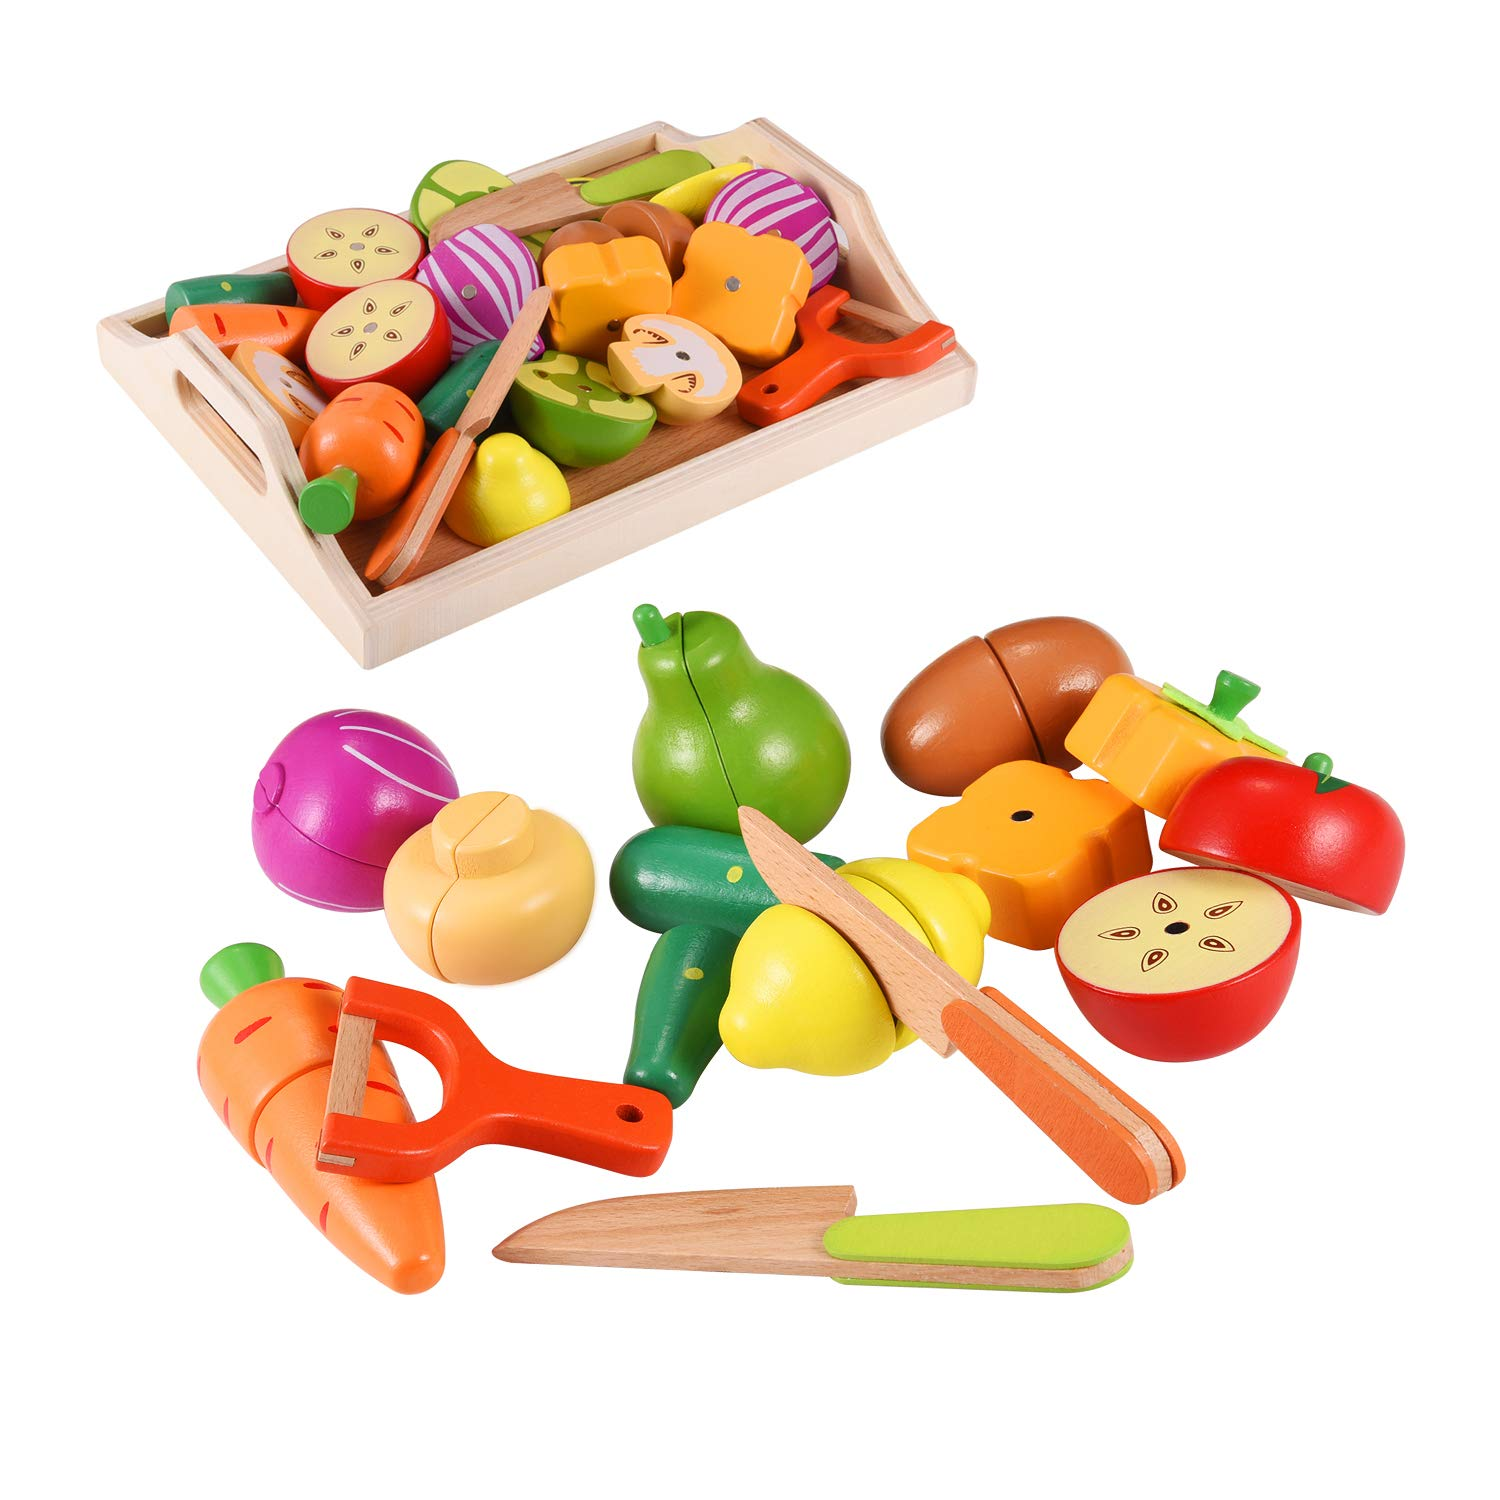 CARLORBO Wooden Toys Food for Kids Kitchen - Play Food Cutting Fruits and Vegetables Set for Pretend Role Play, Learning Toys Gift for Kids 3 Years up